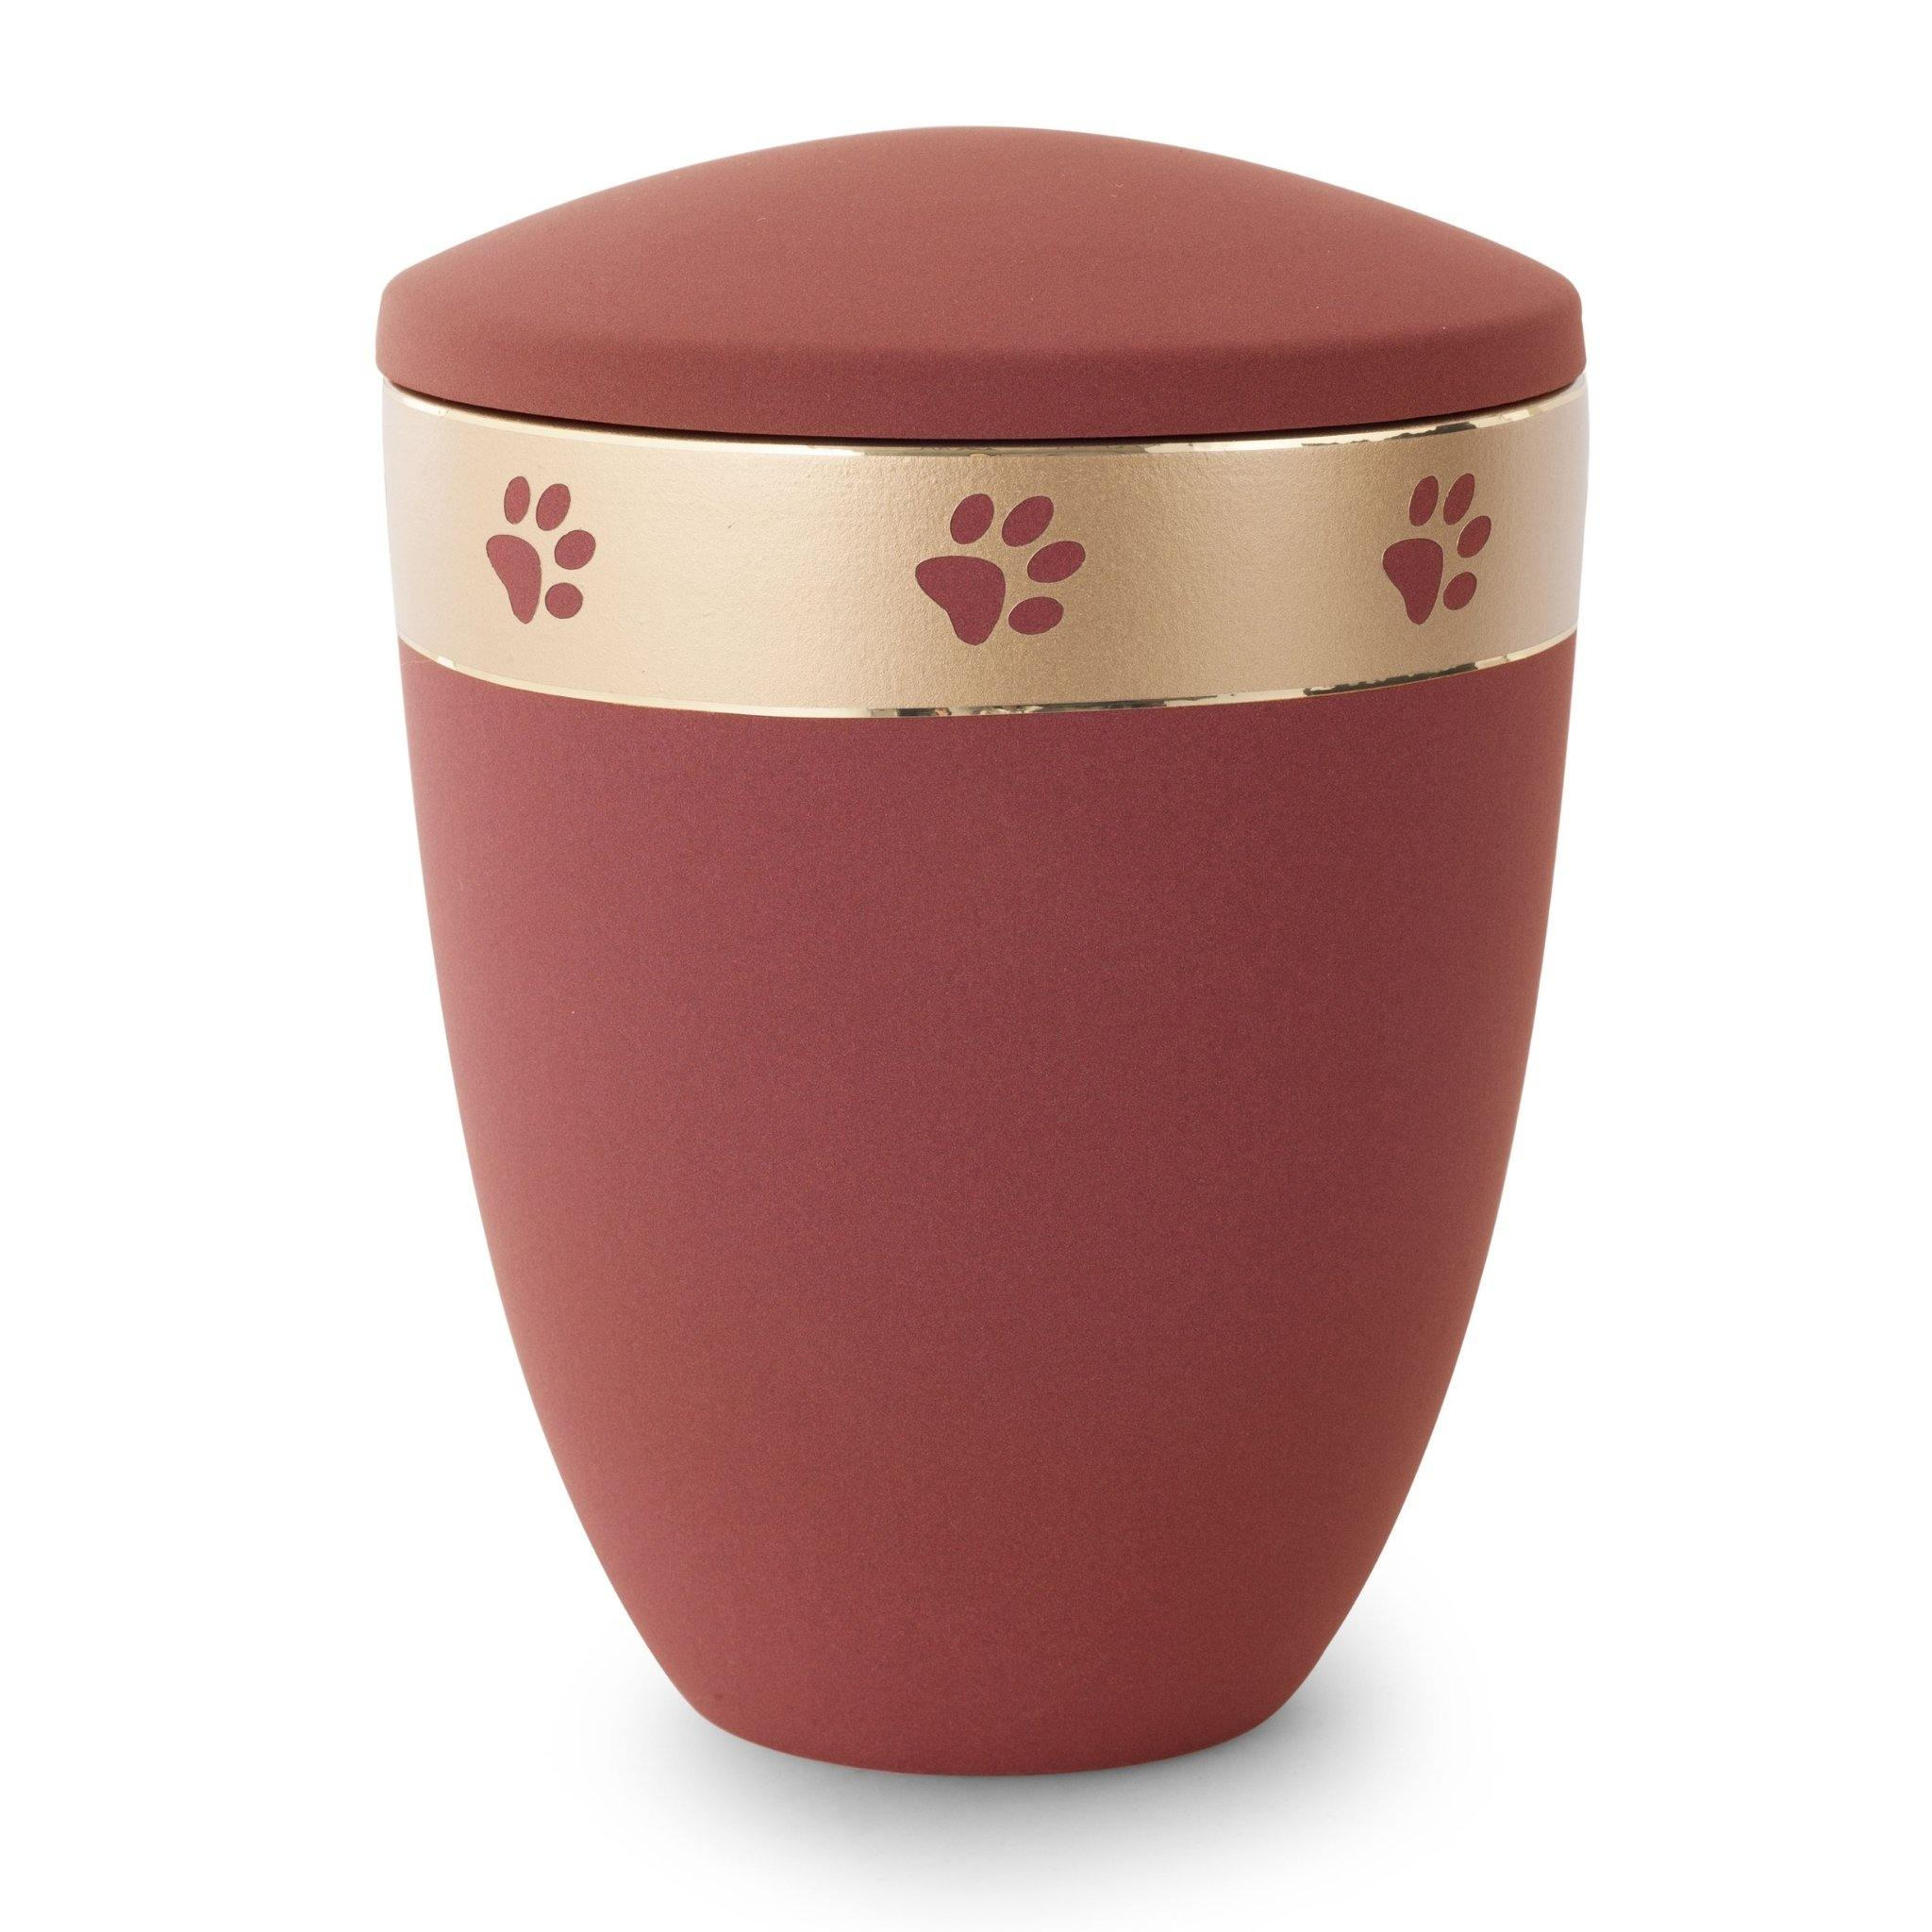 Luton Paw Rim Ceramic Cremation Ashes Urn - Urns UK